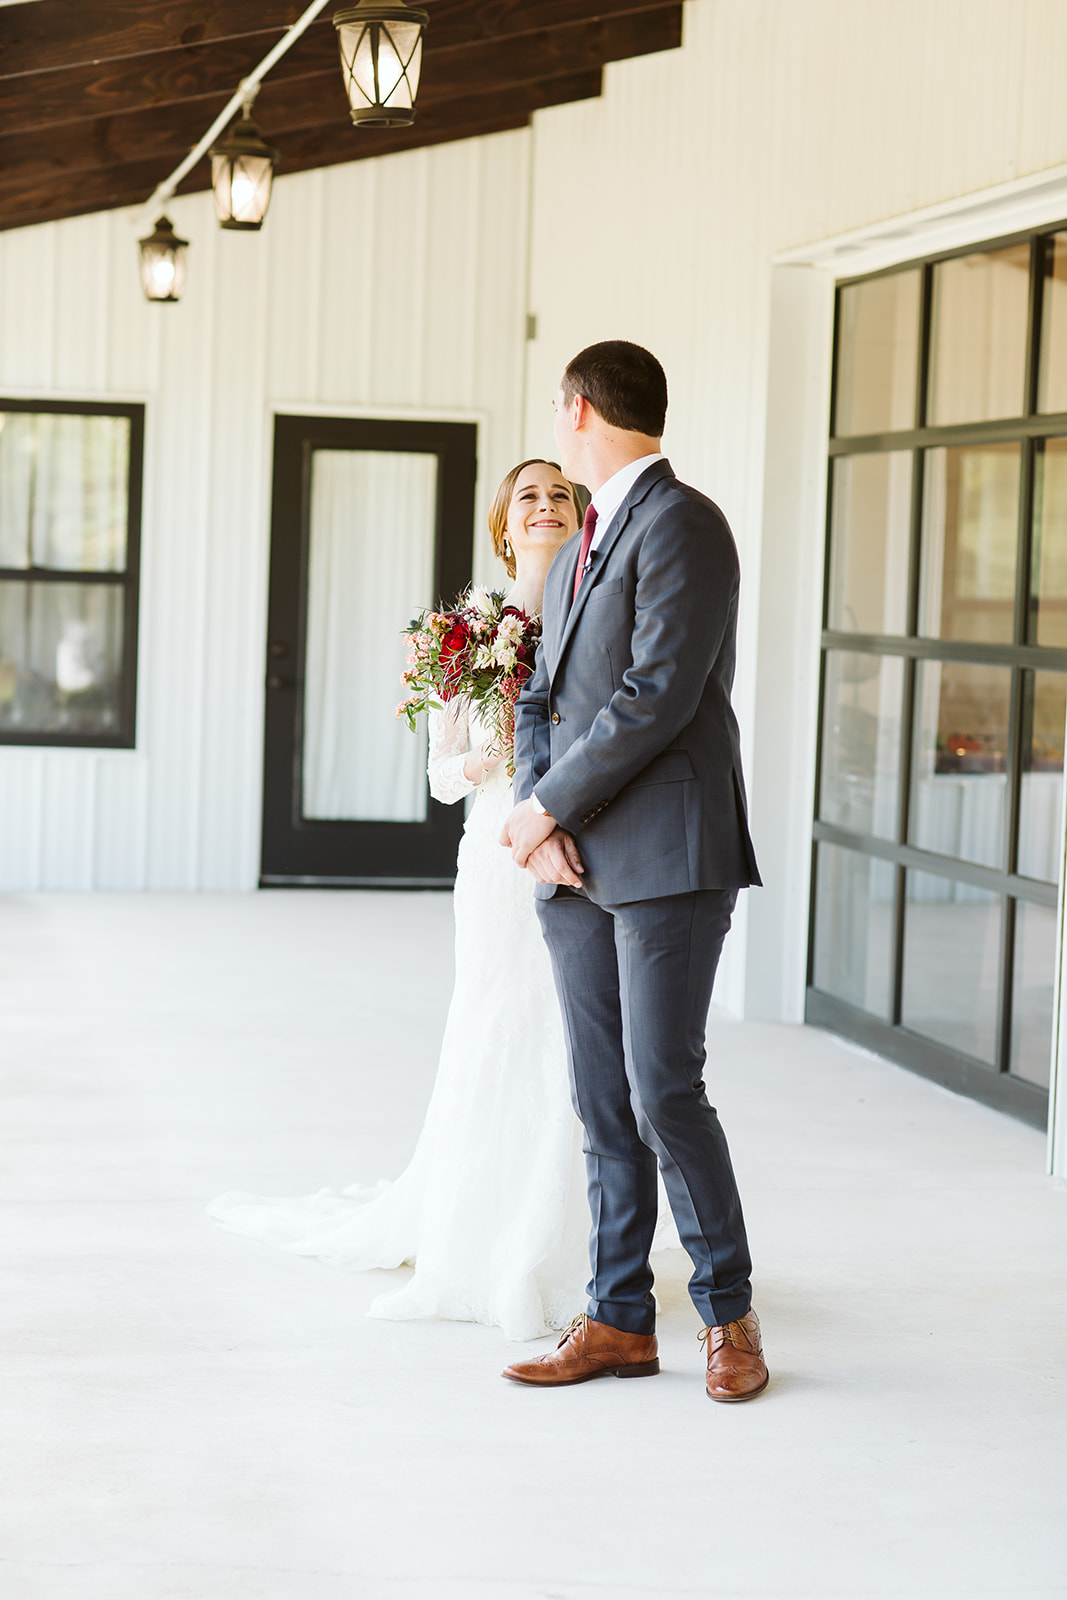 Tulsa Wedding Venue White Barn Dream Point Ranch 27.jpg